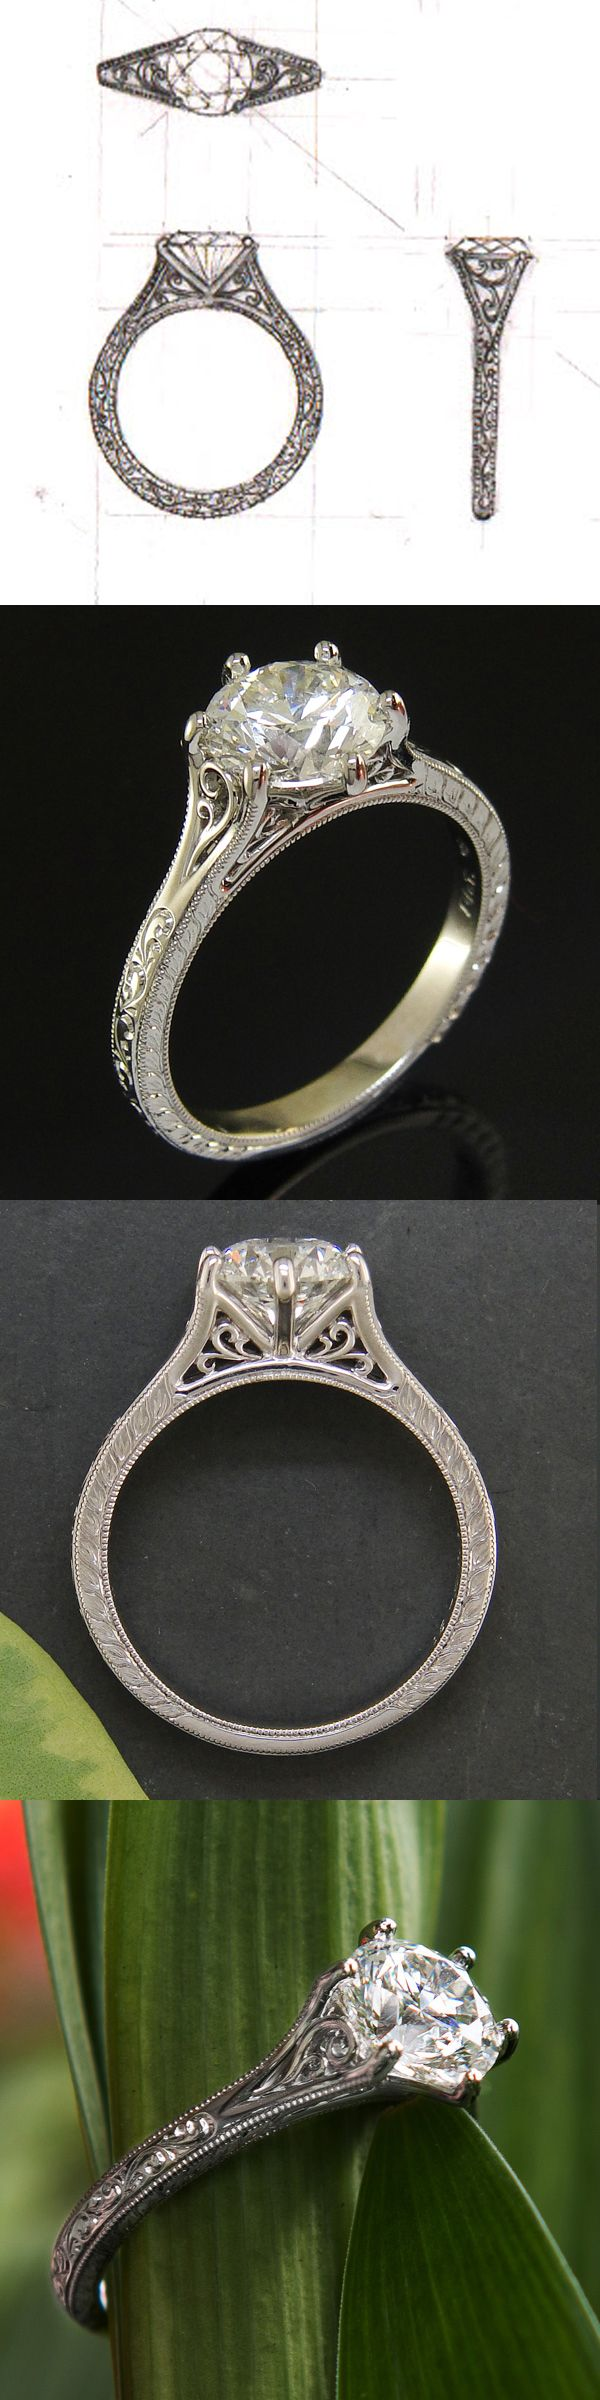 best ring diamond fddiamonds round images split popular rings cut pave pinterest shank engagement stone french on style